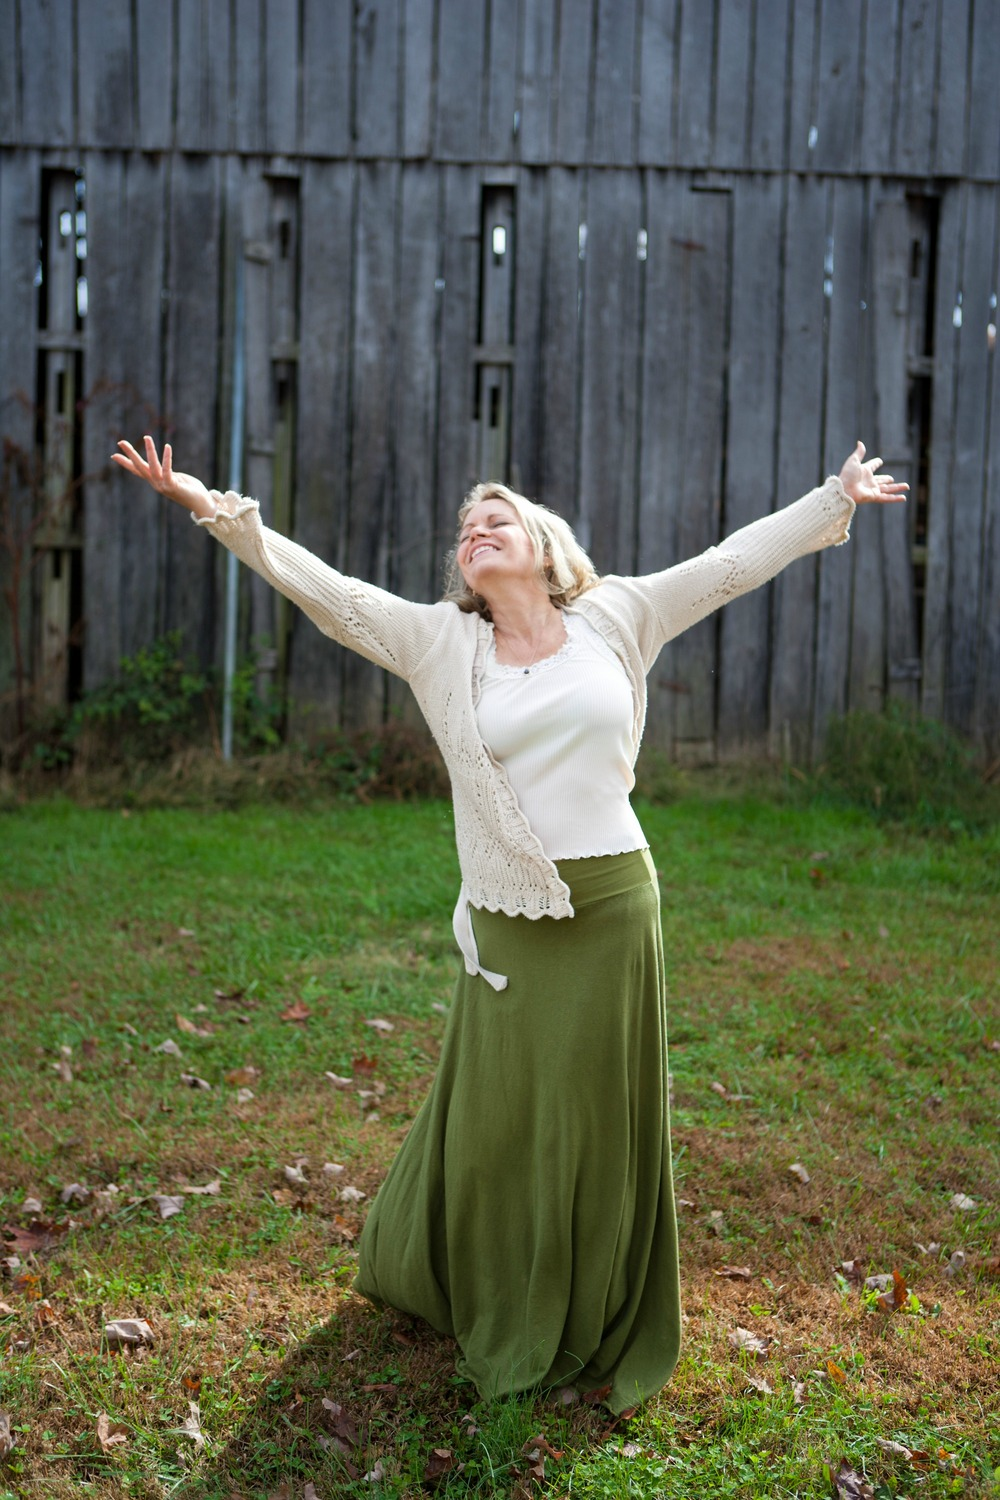 Wanderer Long Skirt - Dancing by our barn - Katrina M